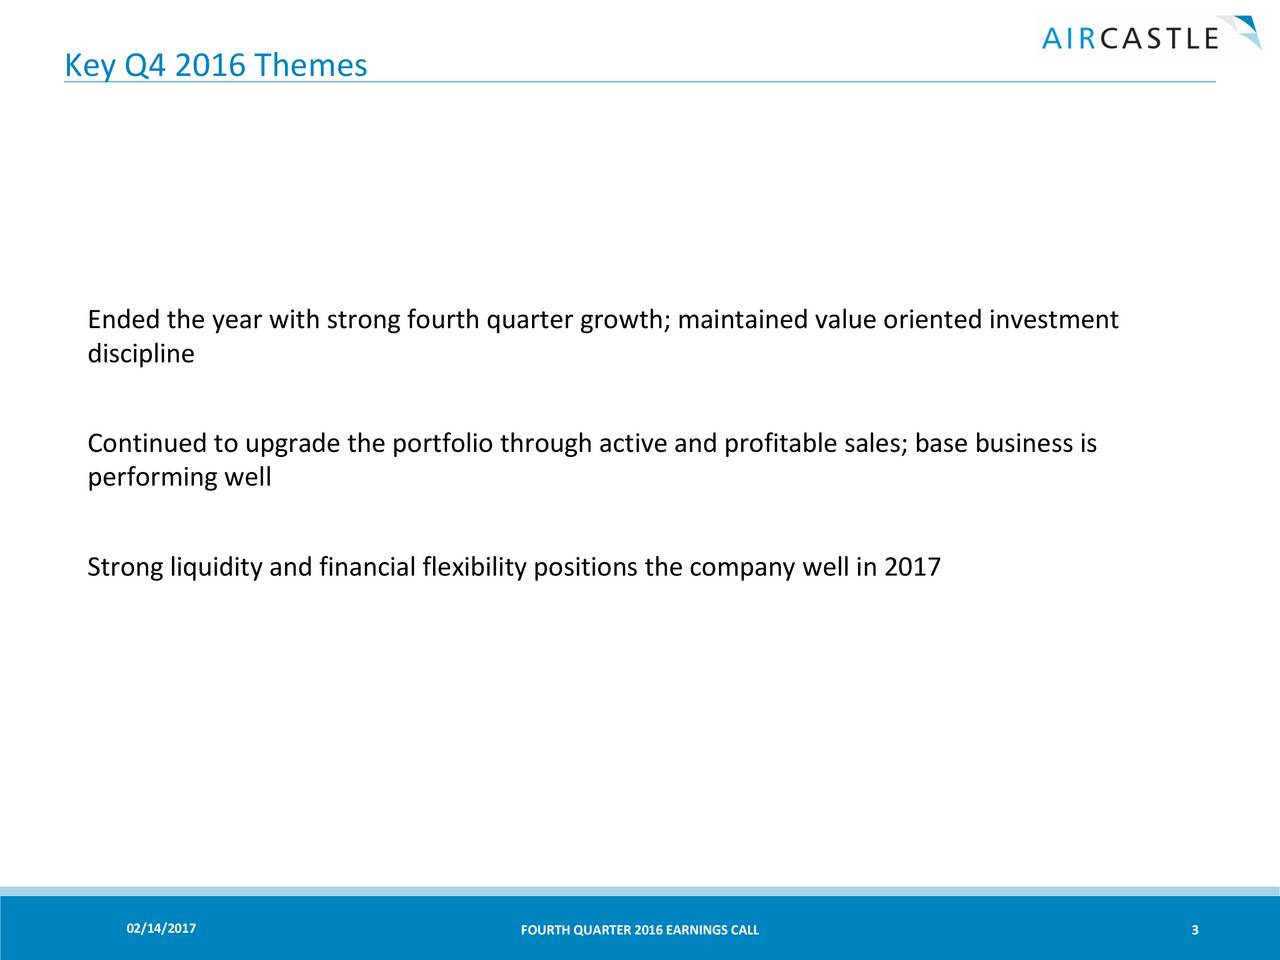 Ended the year with strong fourth quarter growth; maintained value oriented investment discipline Continued to upgrade the portfolio through active and profitable sales; base business is performing well Strong liquidity and financial flexibility positions the company well in 2017 02/14/2017 FOURTH QUARTER 2016 EARNINGS CALL 3